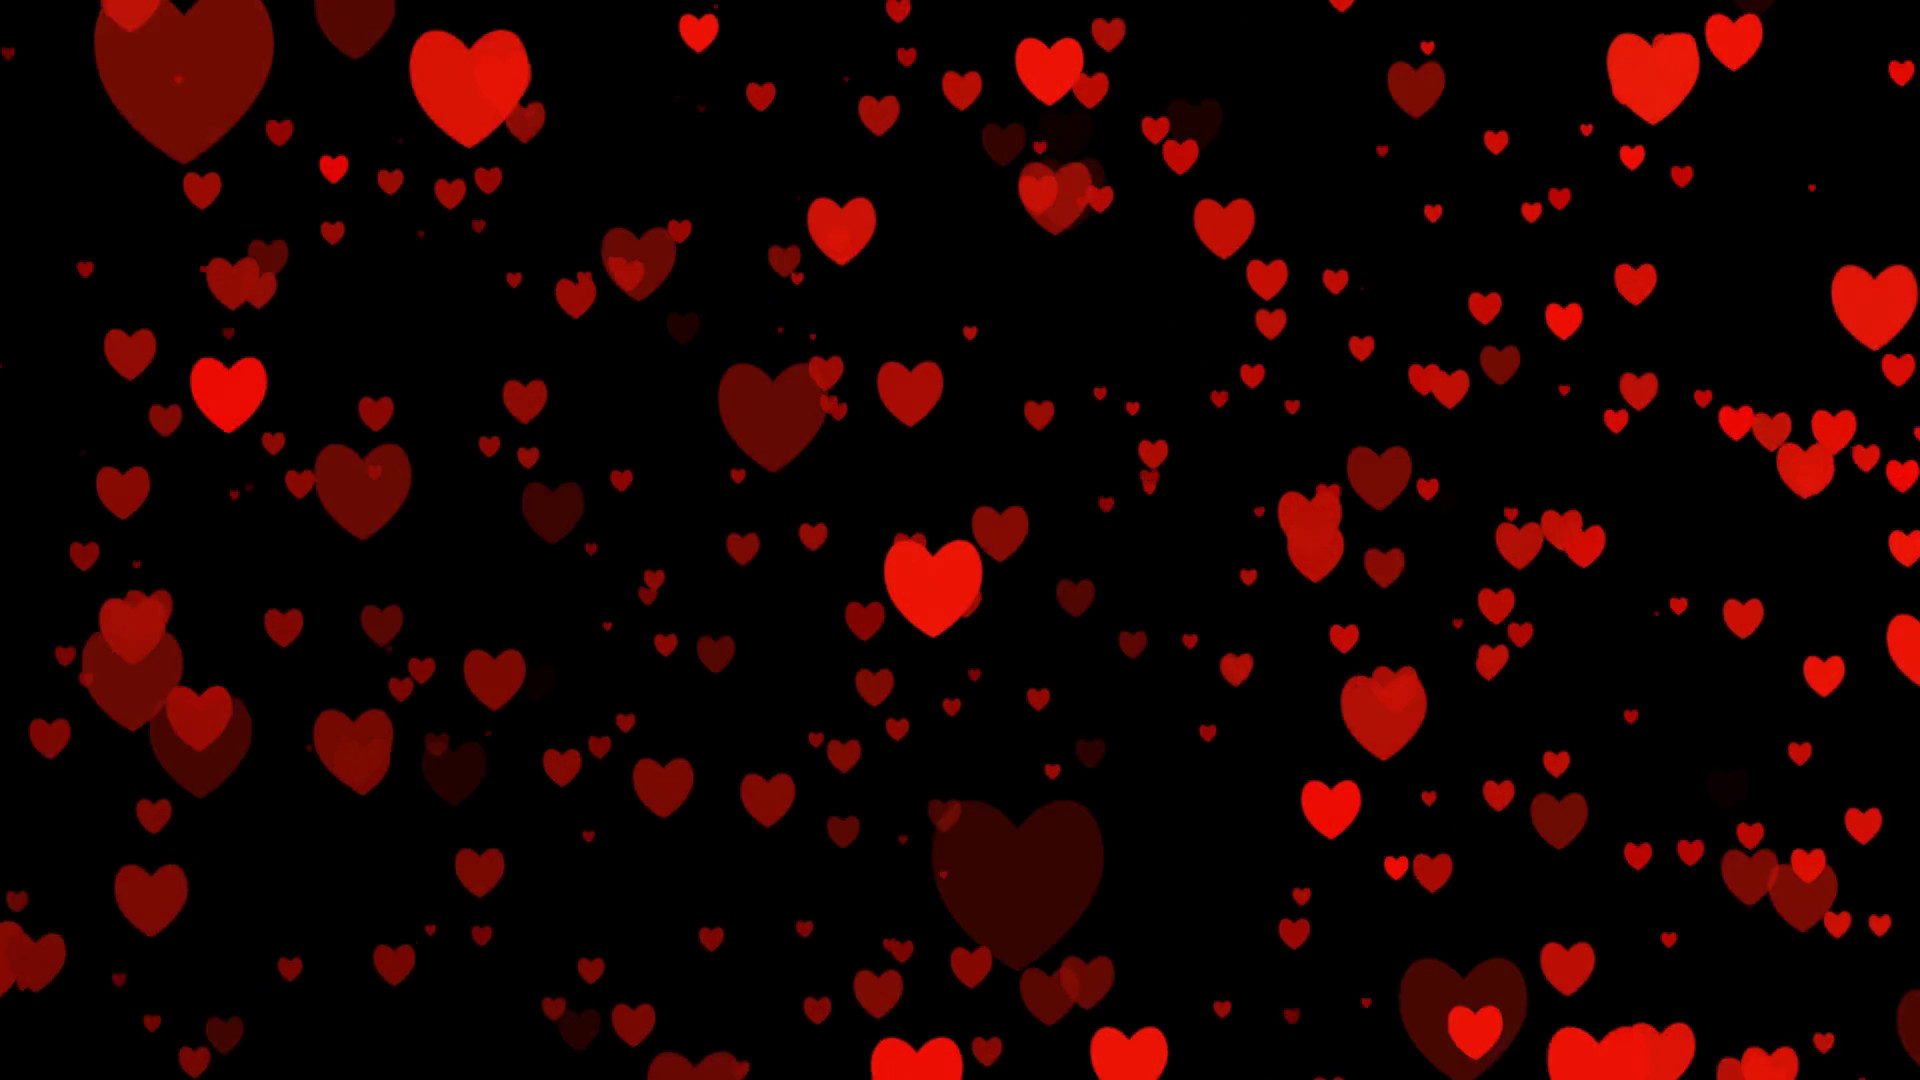 Subscription Library Heart video for valentines day for love appears on  black background animated of your feeling.